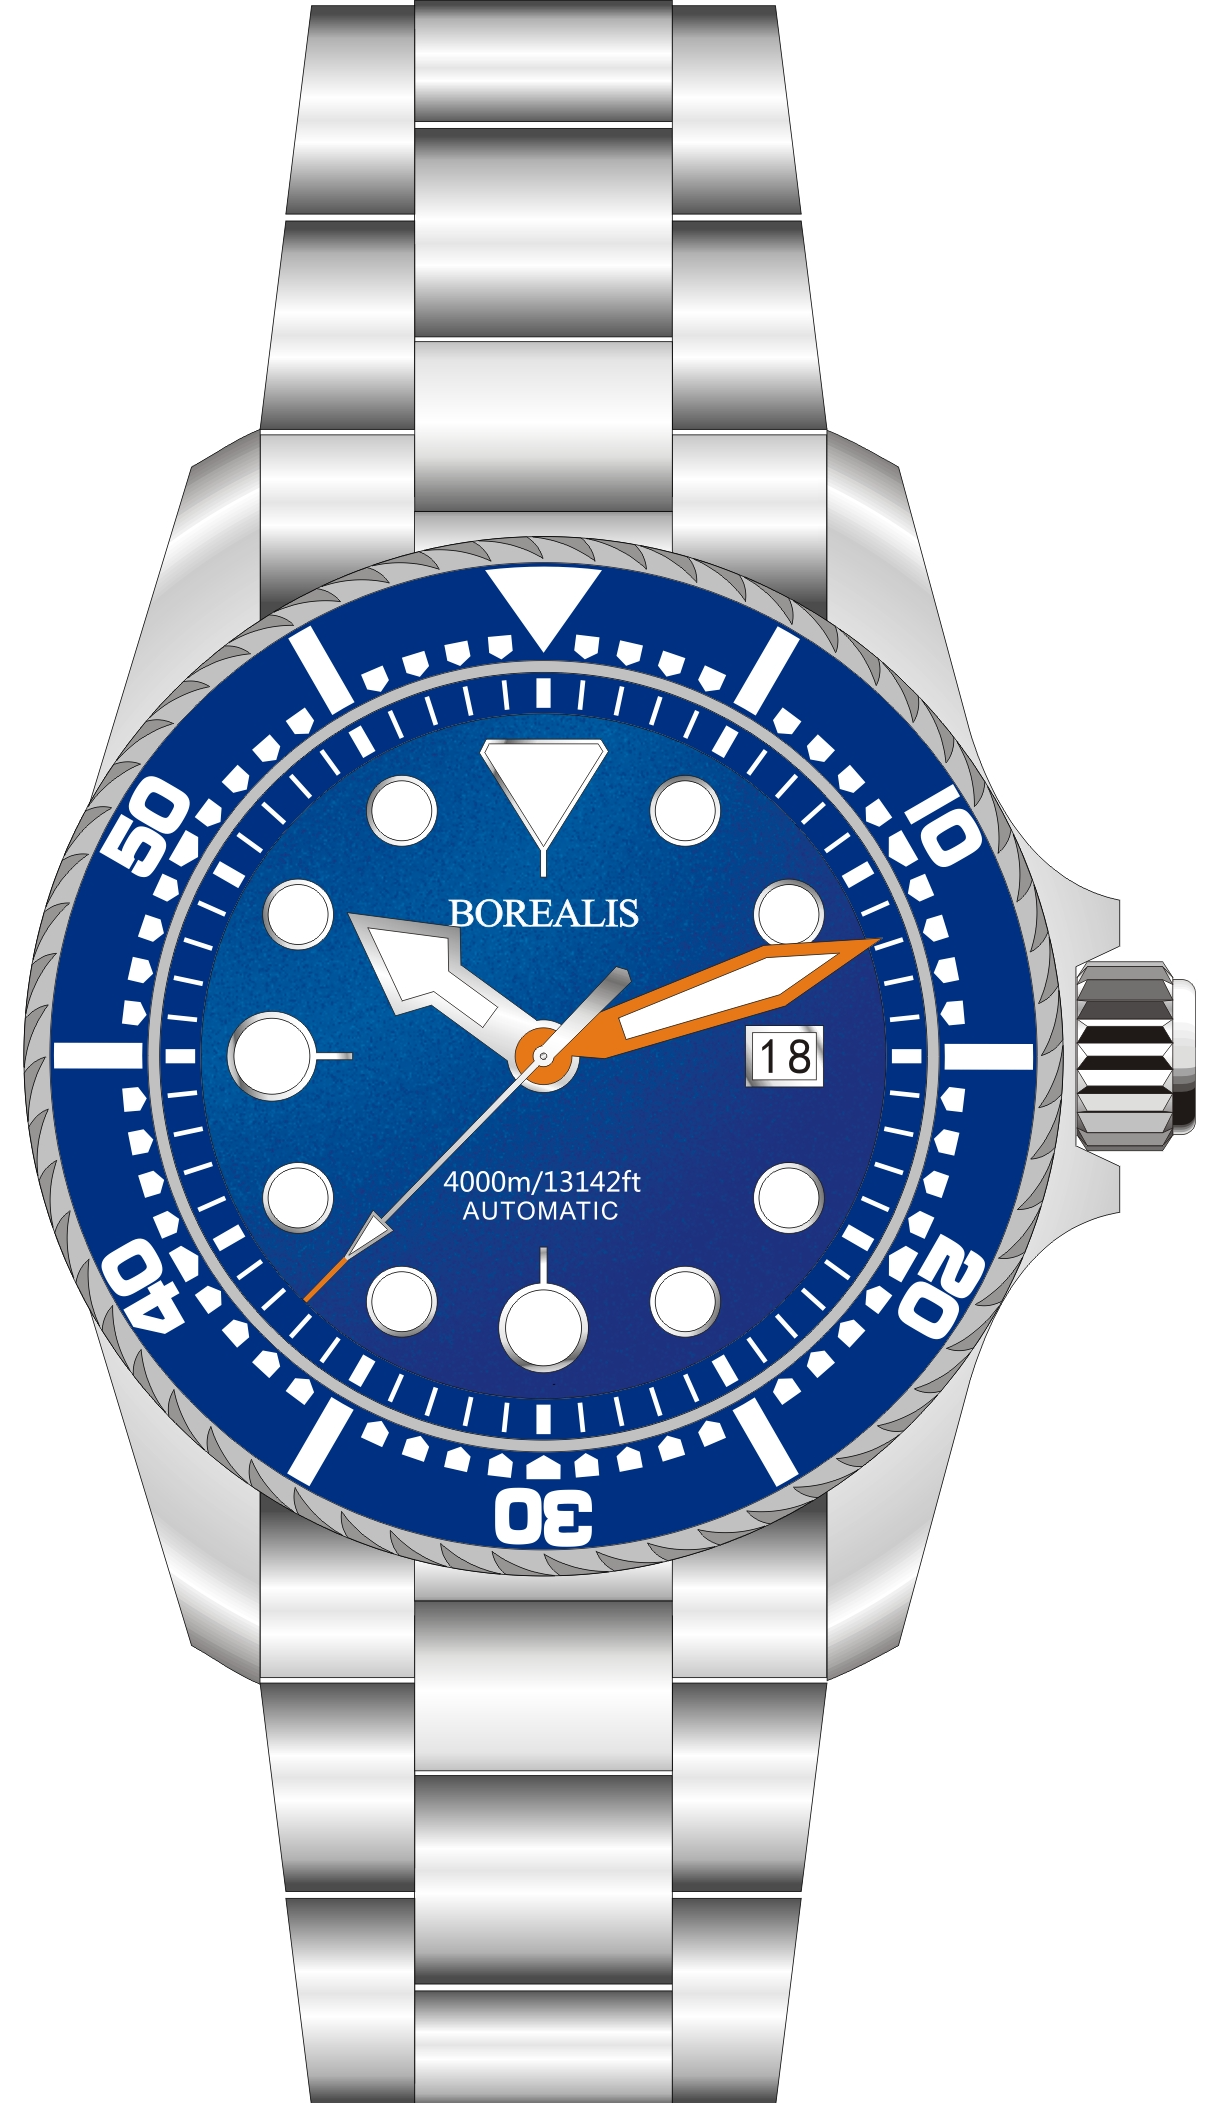 Borealis Seafarer II Stainless Steel Blue BGW9 Sapphire Turbine Style Grip Bezel 4000m Miyota 9015 Automatic Diver Watch BSFIIBLUEBGW9